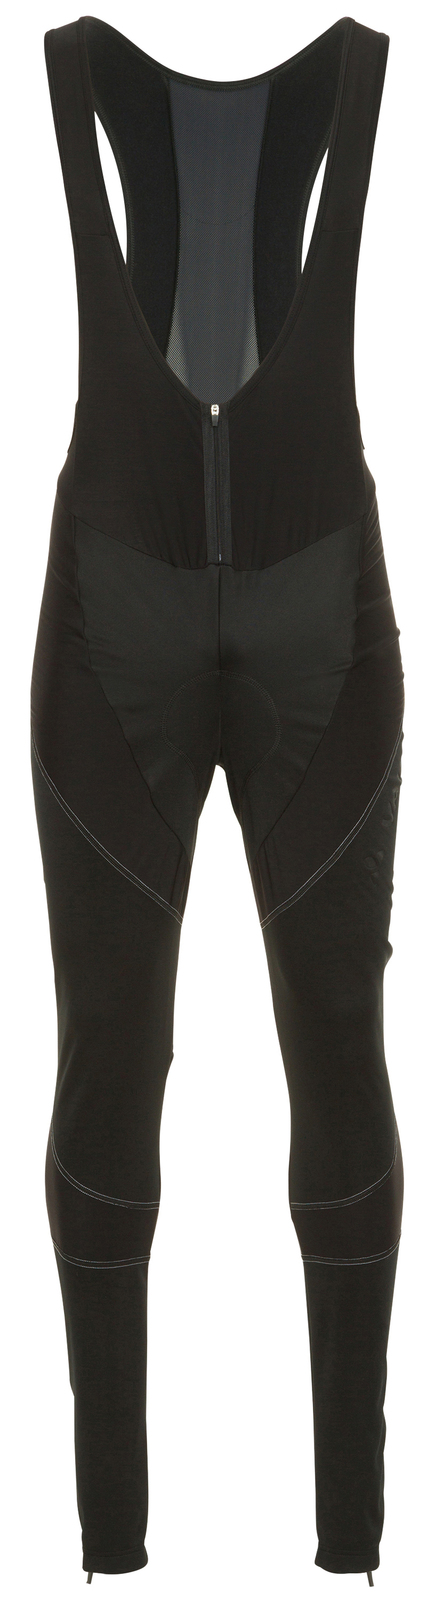 VAUDE Men´s Pro Warm Pants black Größe M - schneider-sports